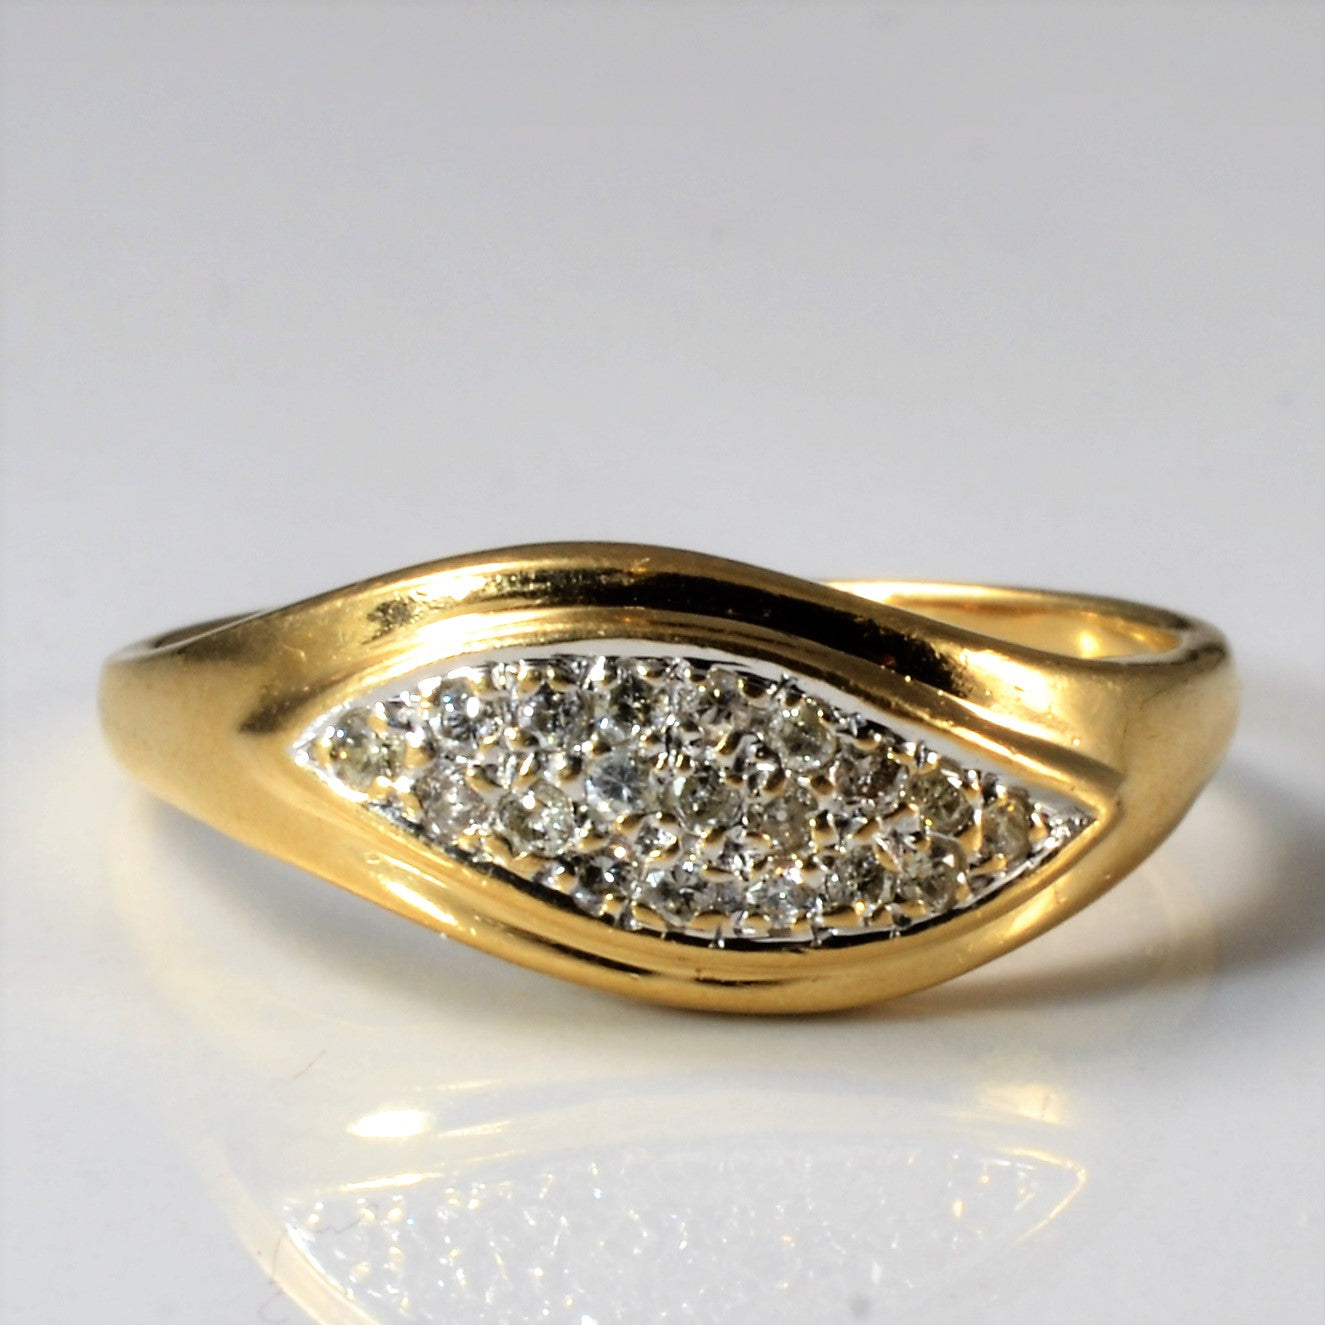 Unisex Pave Diamond Wave Band | 0.20 ctw, SZ 9 |